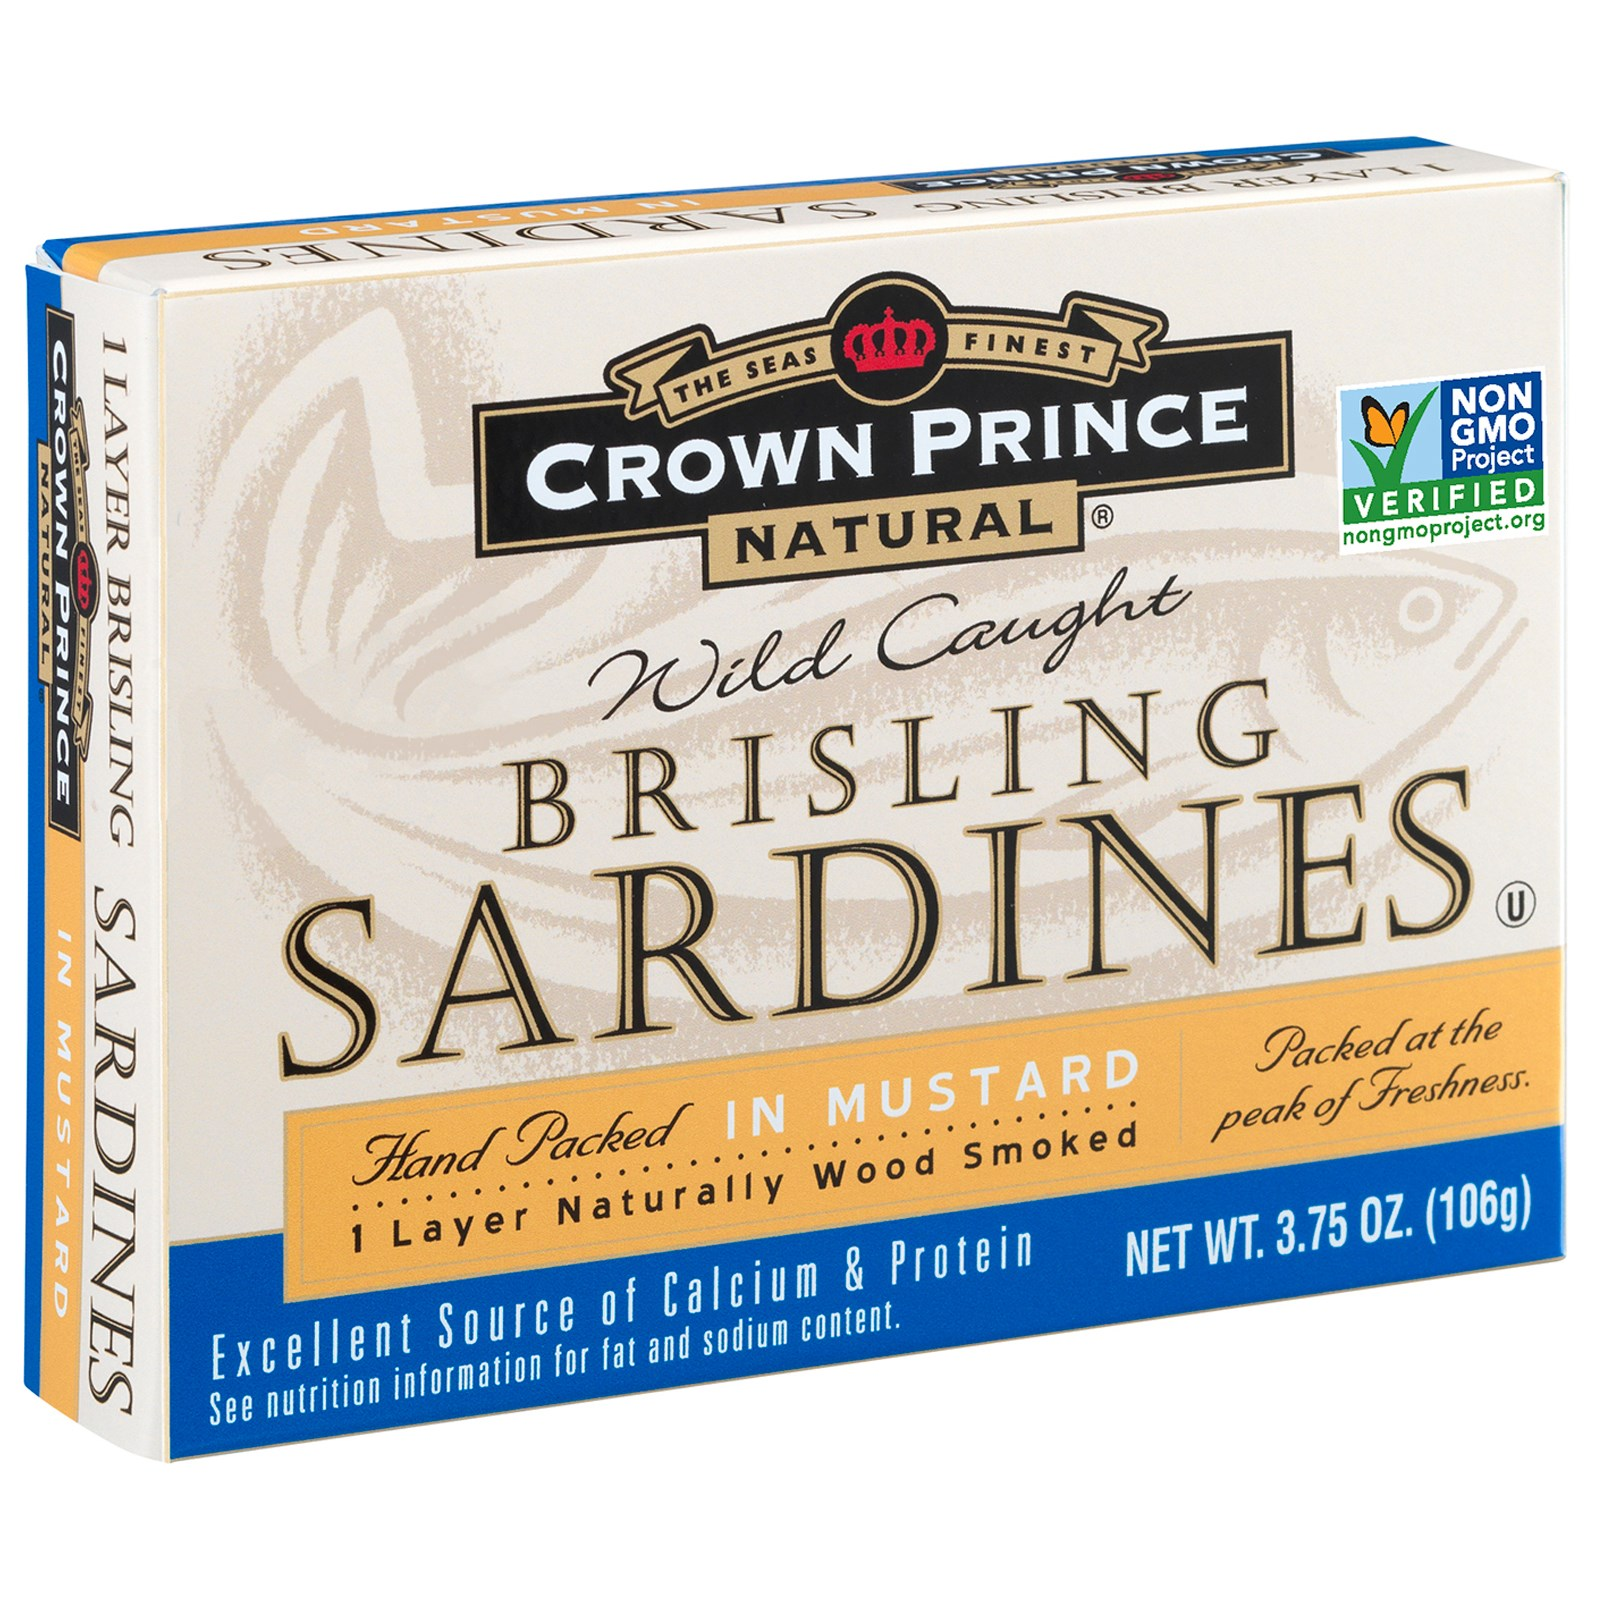 Crown Prince Natural, Brisling Sardines, In Mustard, 3.75 oz (pack of 3)